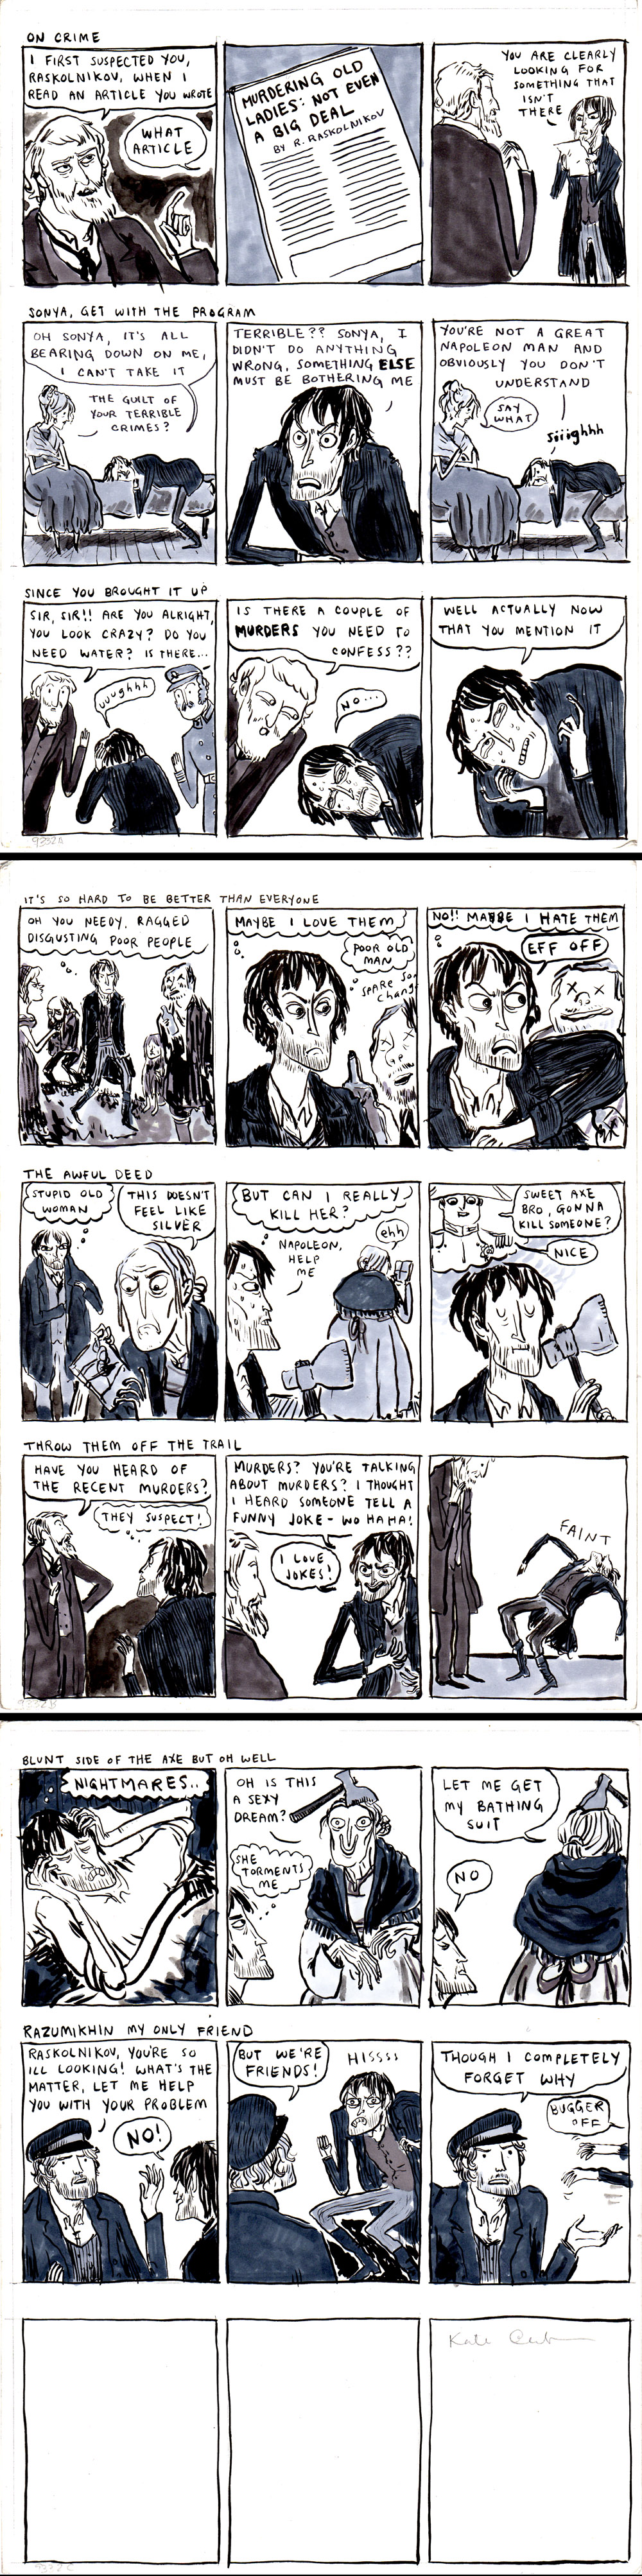 Crime and Punishment 8 Strips